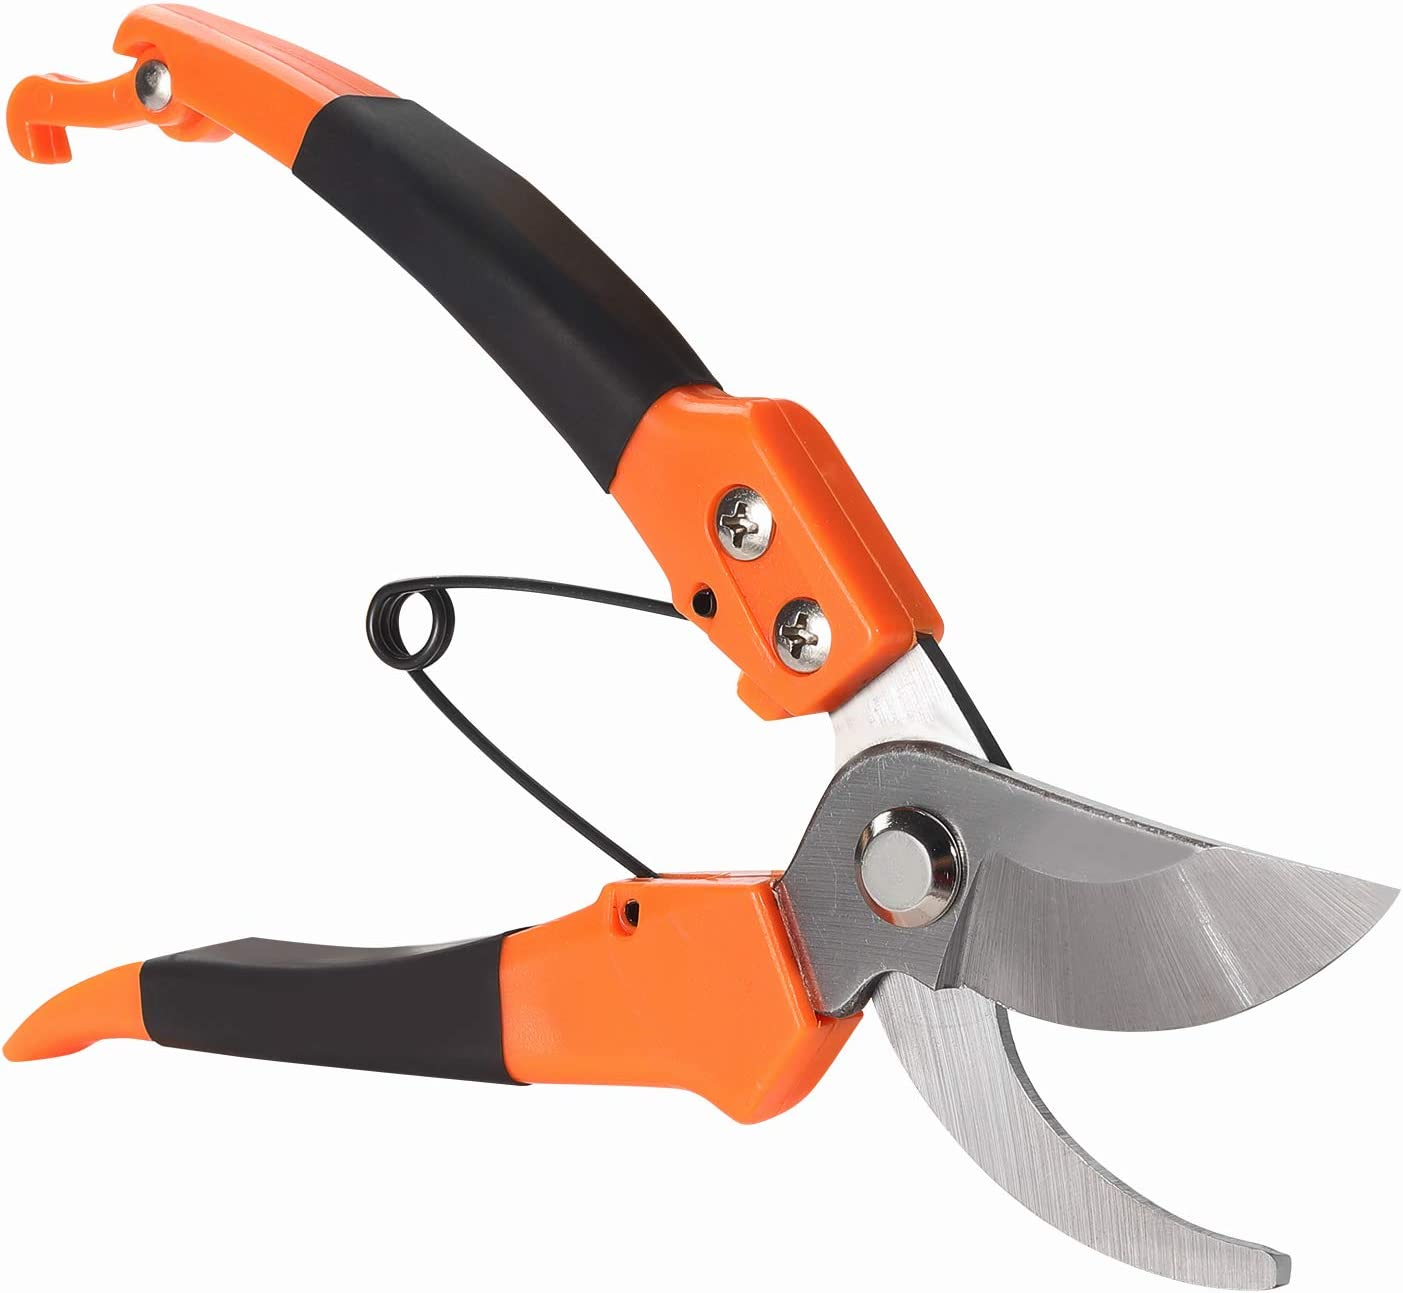 Bypass Pruning Shears Heavy Duty.Hand Bypass Pruners.Gaden Shears.Professional Pruning Shears.Makes Clean Cuts.1 Inch Cutting Capacity.Ergonomically Design Handle.Tree Trimmers Secateurs